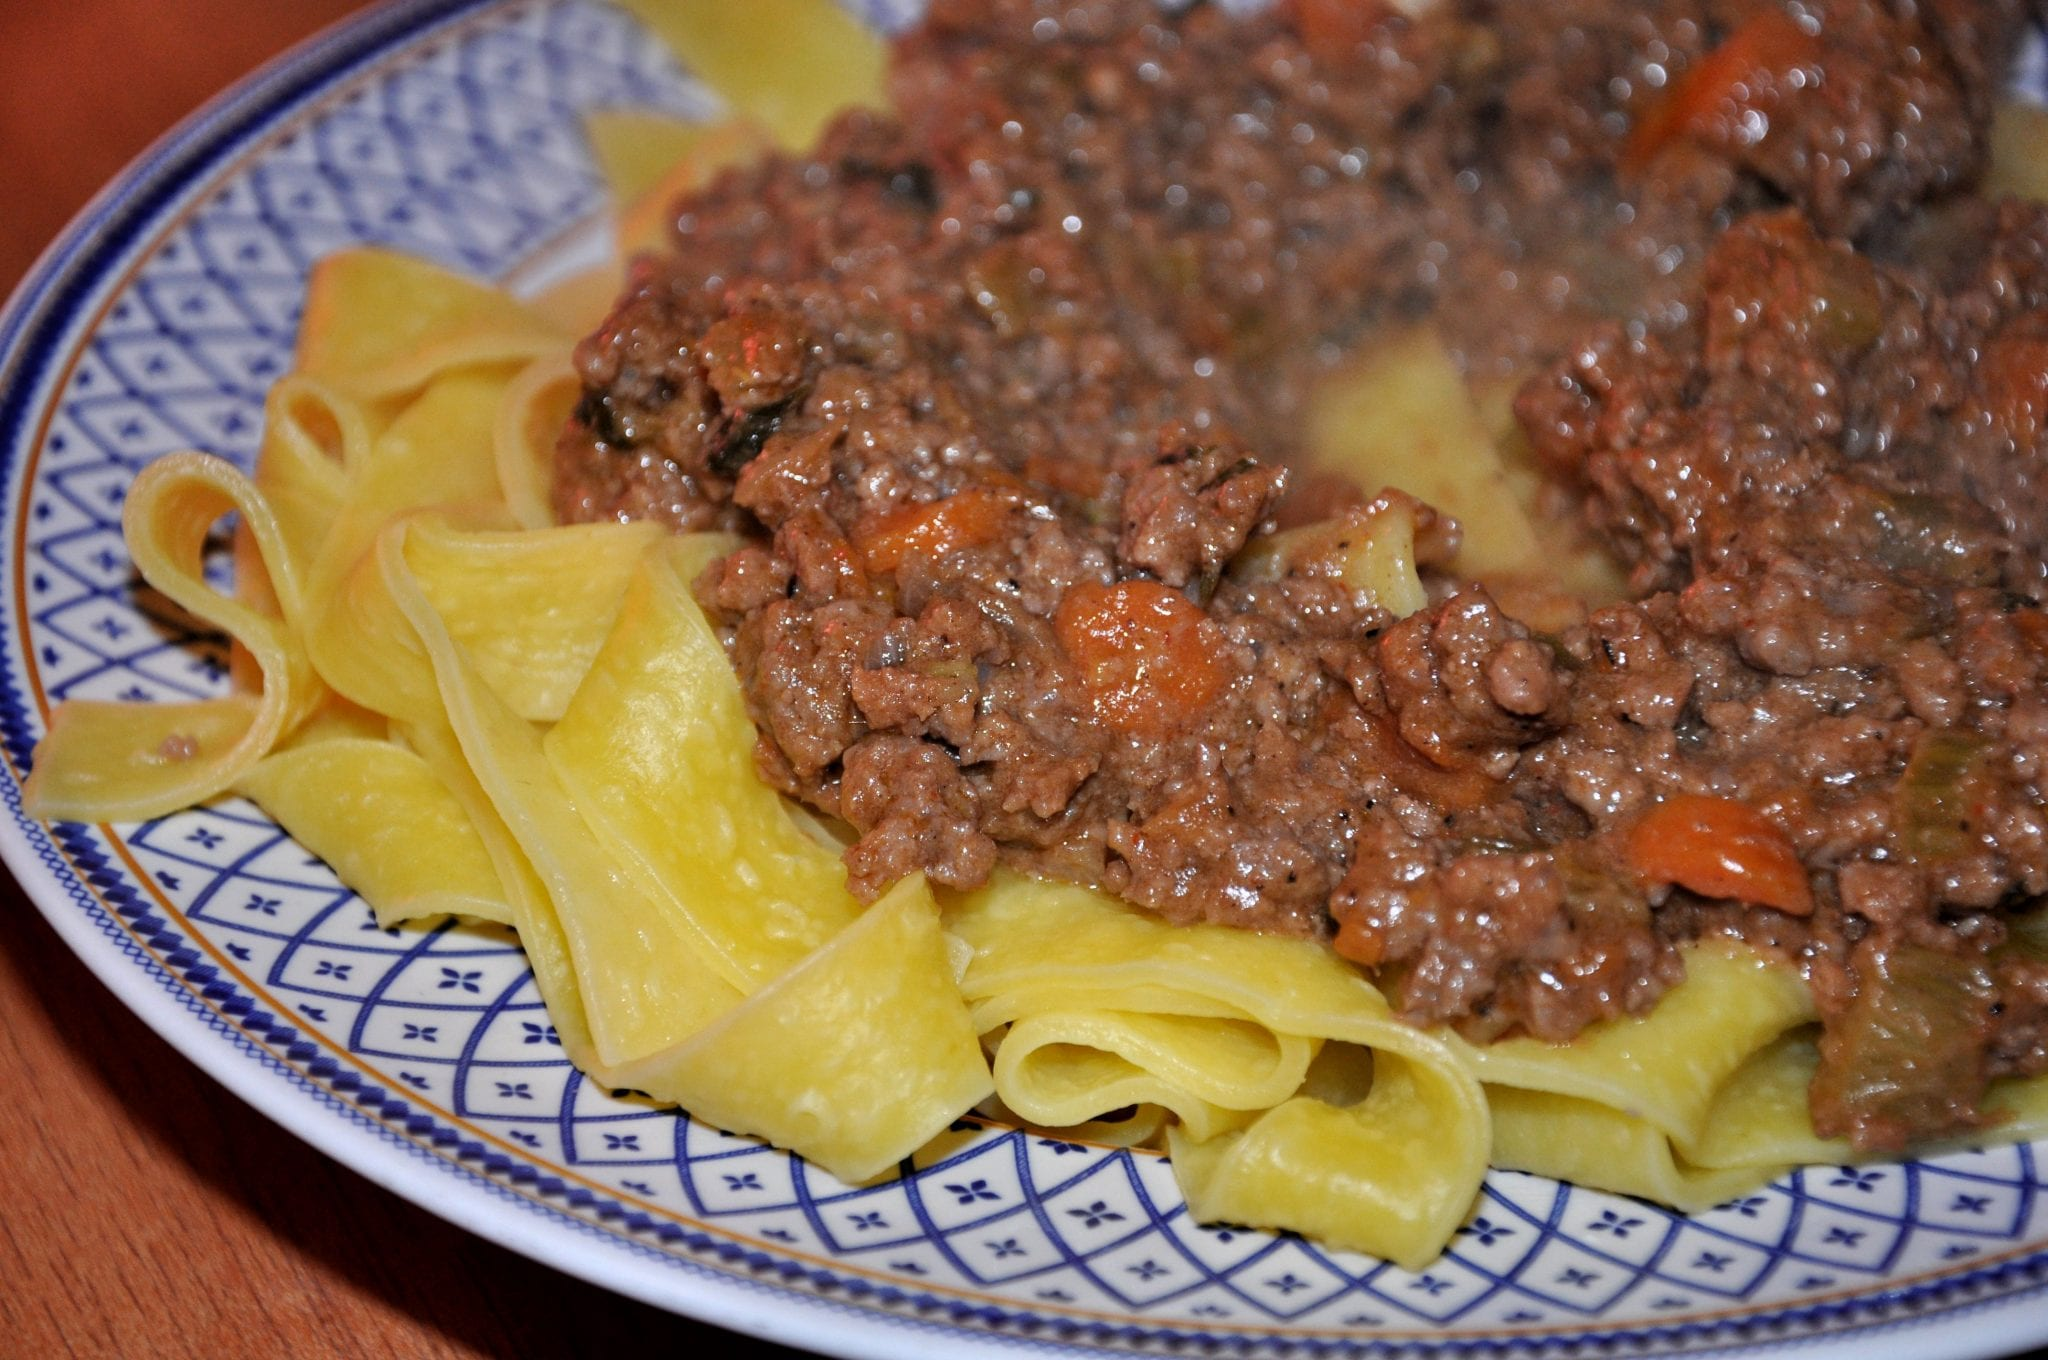 Umbrian and Tuscan ragu, a culinary specialty